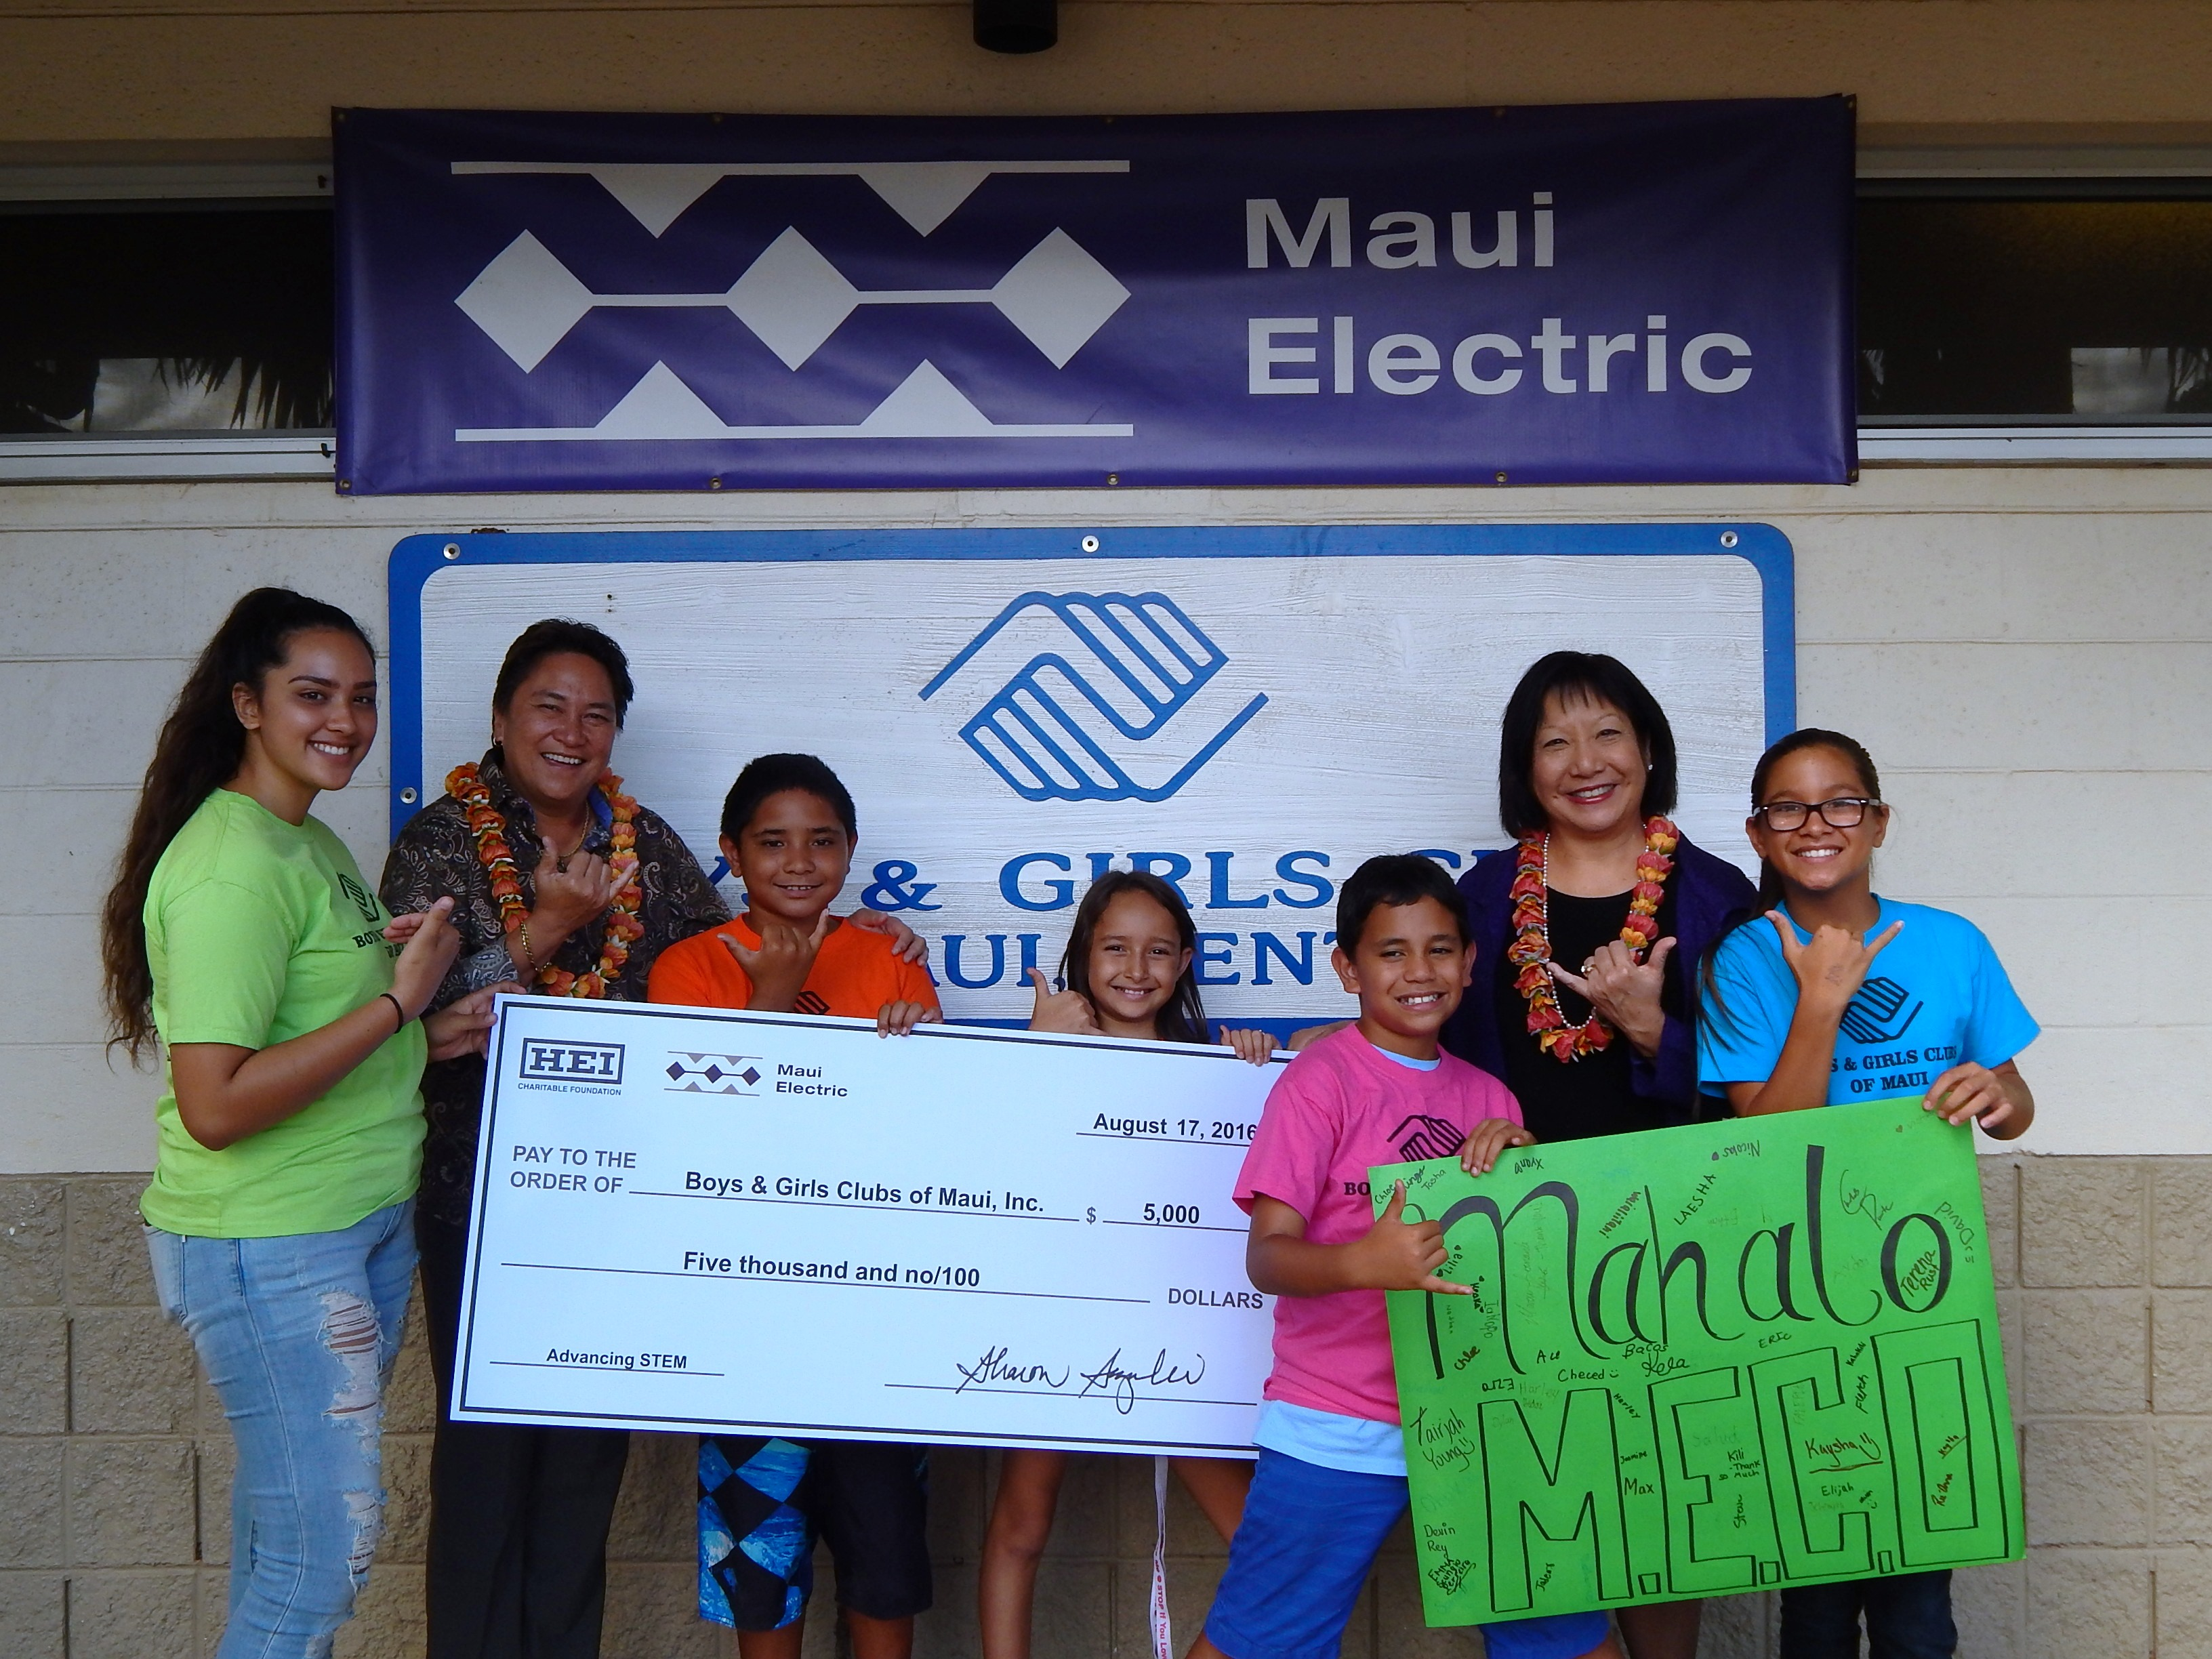 Maui Electric supports Boys and Girls Club of Maui's STEM program with $5,000 donation